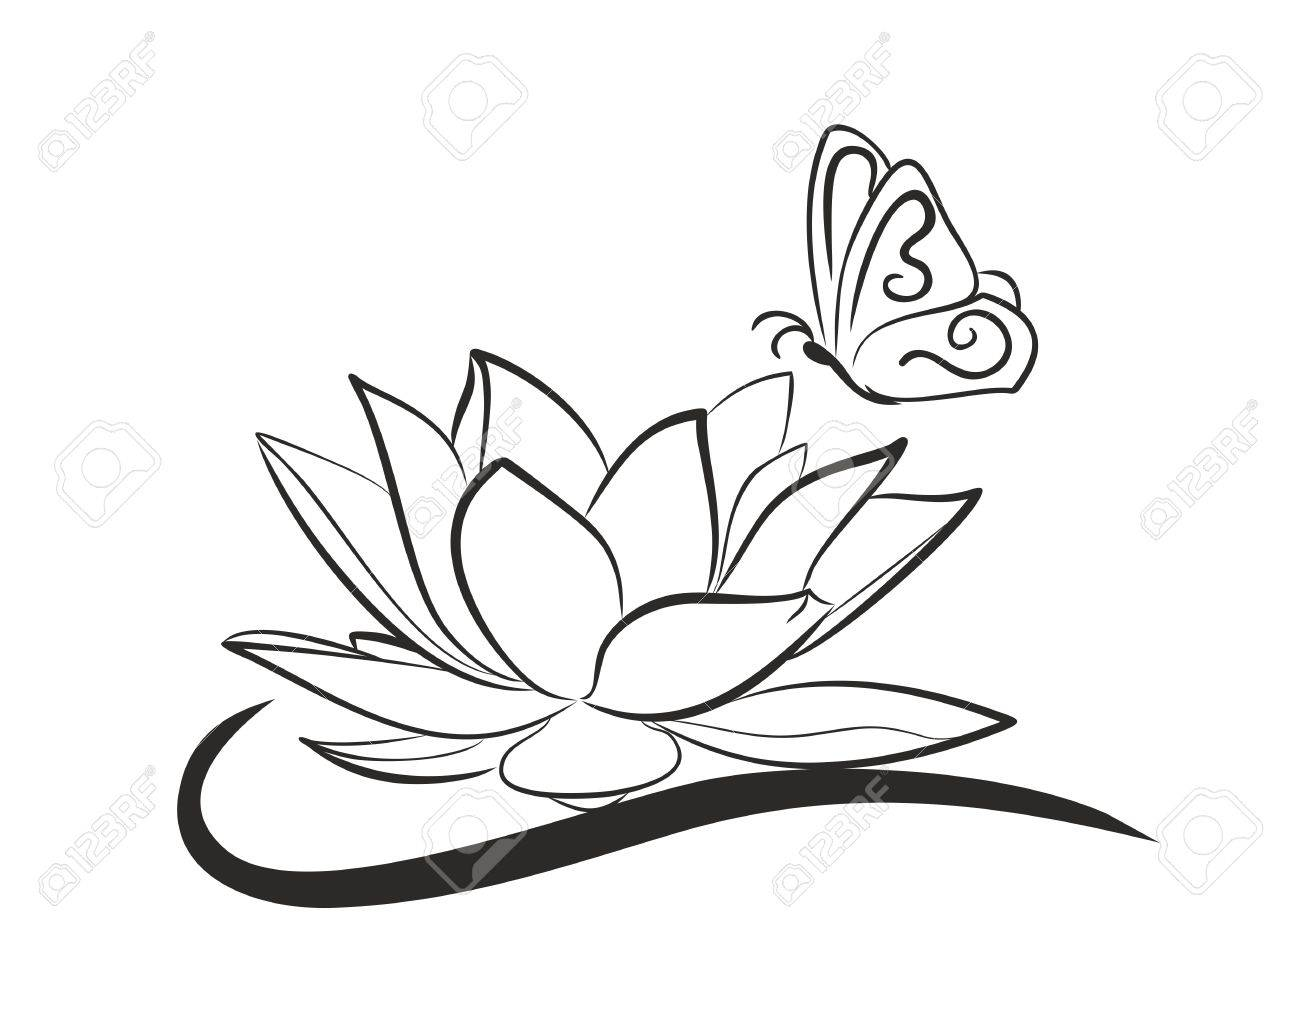 Lotus with flying butterfly. - 54791036